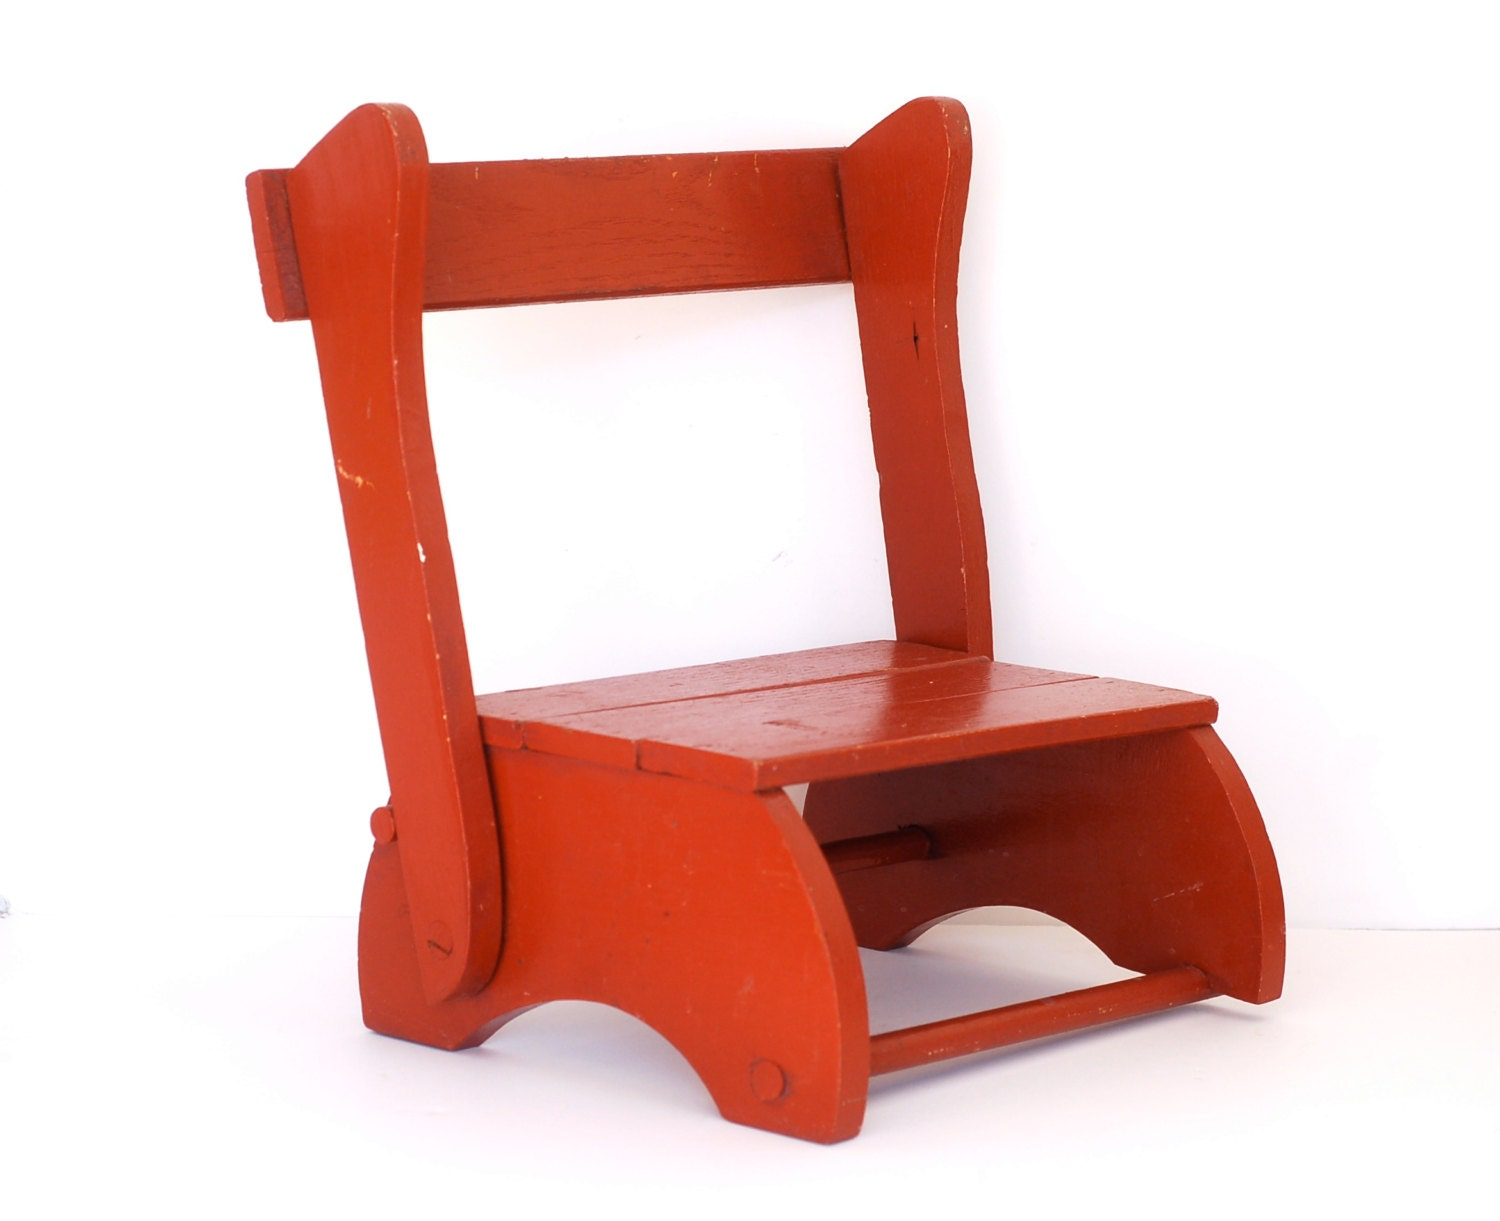 Vintage Rustic Red Folding Child s Chair Step Stool by Surfaced